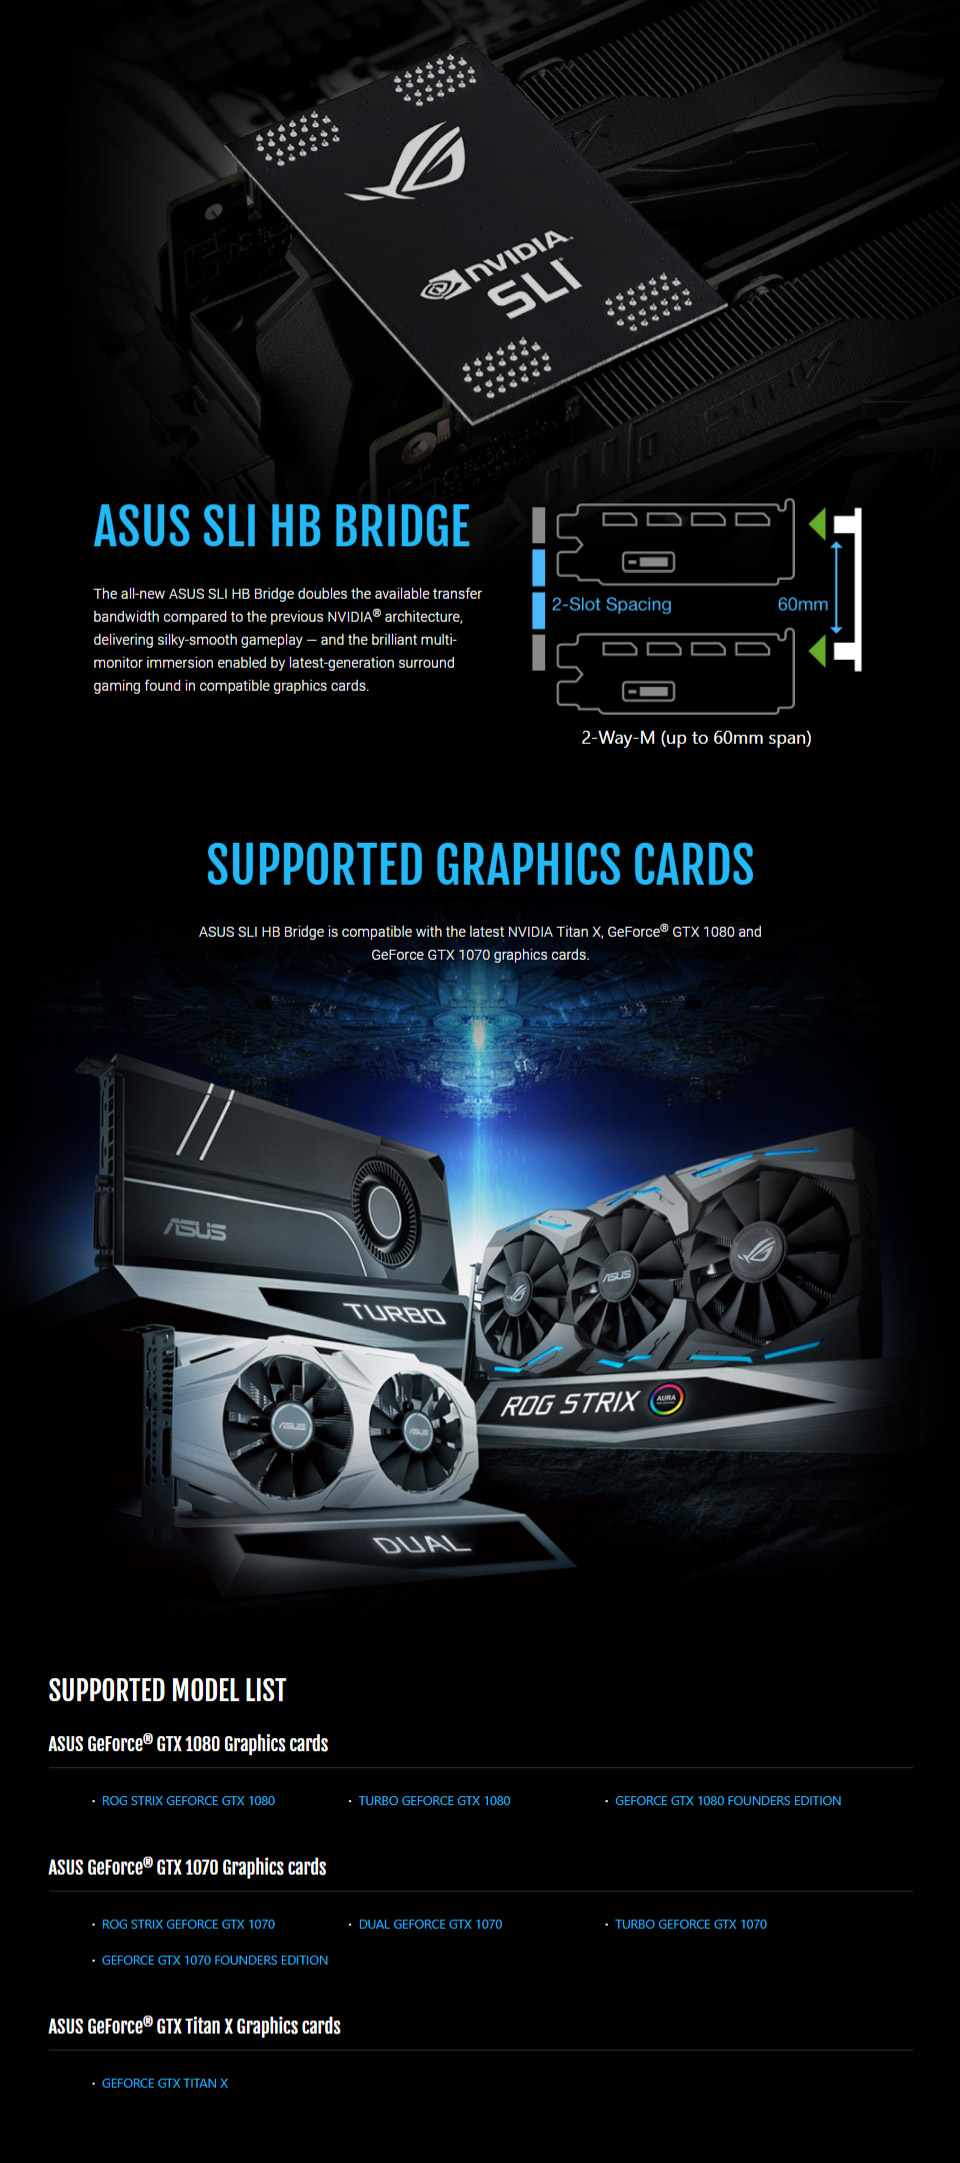 Multi Monitor Immersion Enabled By Latest Generation Surround Gaming Found In Compatible Graphics Cards 2 Way M Slot Spacing Up To 60mm Span